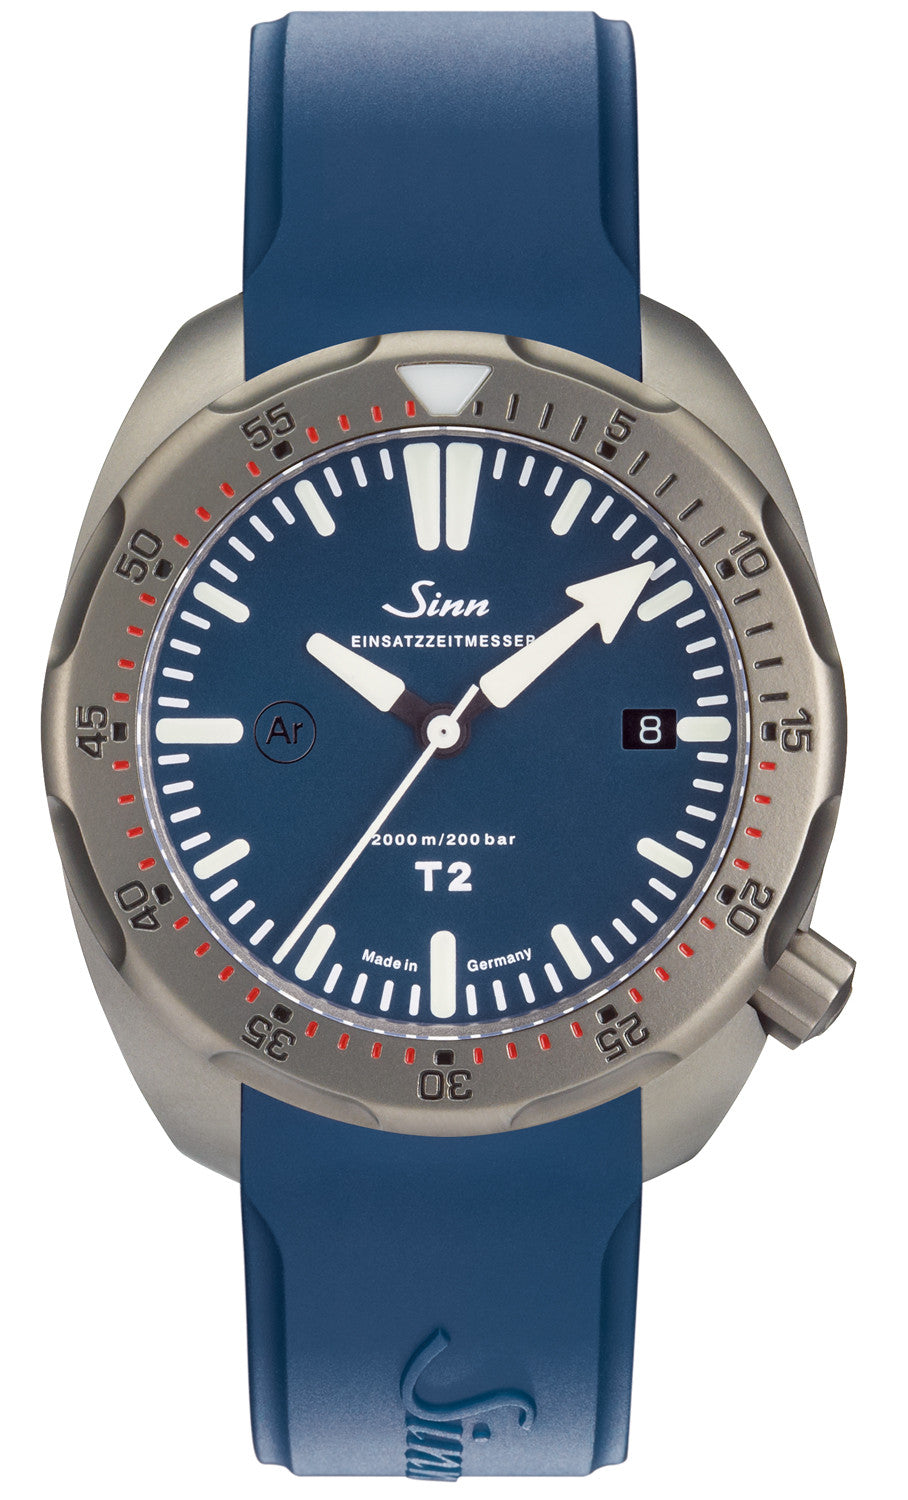 Sinn Watch T2 B EZM 15 Rubber Strap Blue